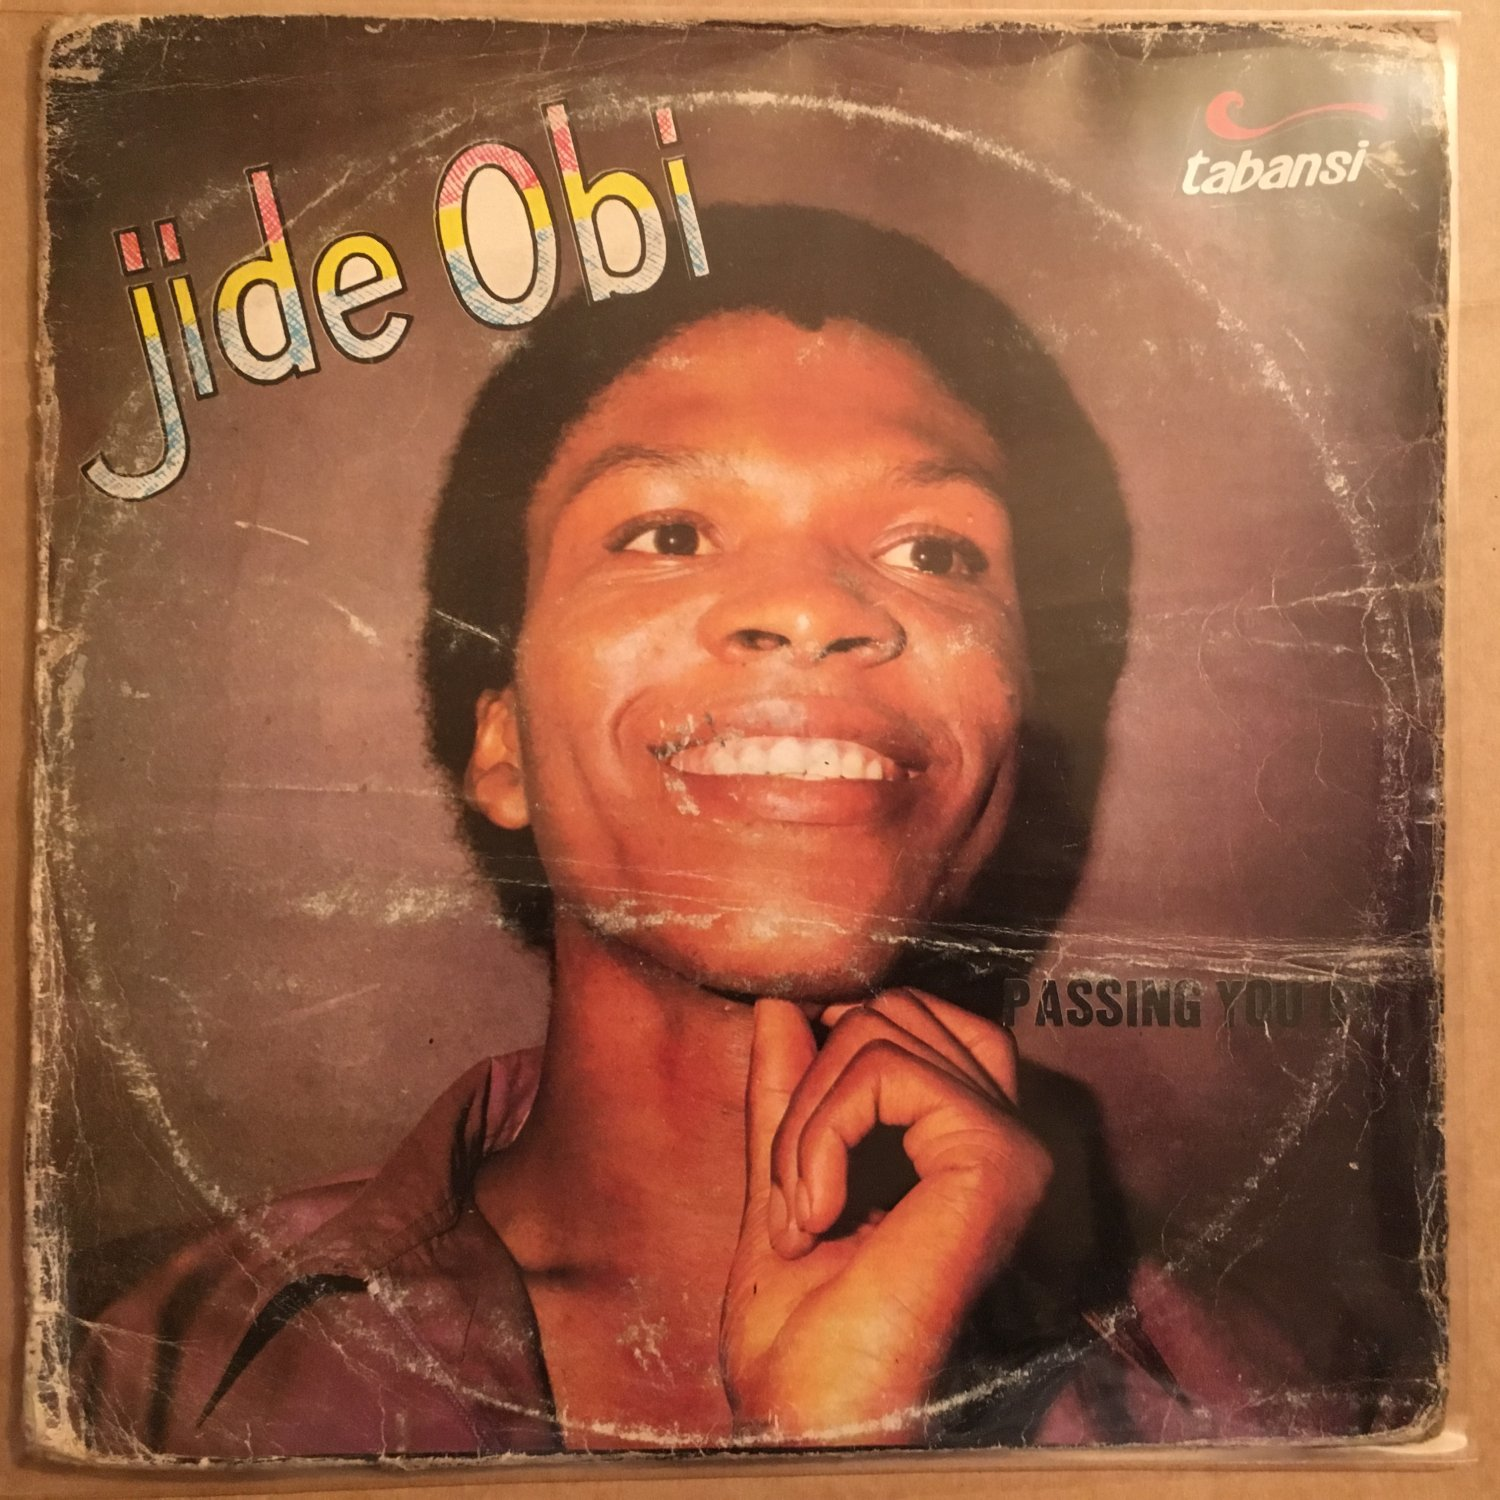 JIDE OBI LP passing you by AFRO BOOGIE FUNK NIGERIA mp3 LISTEN